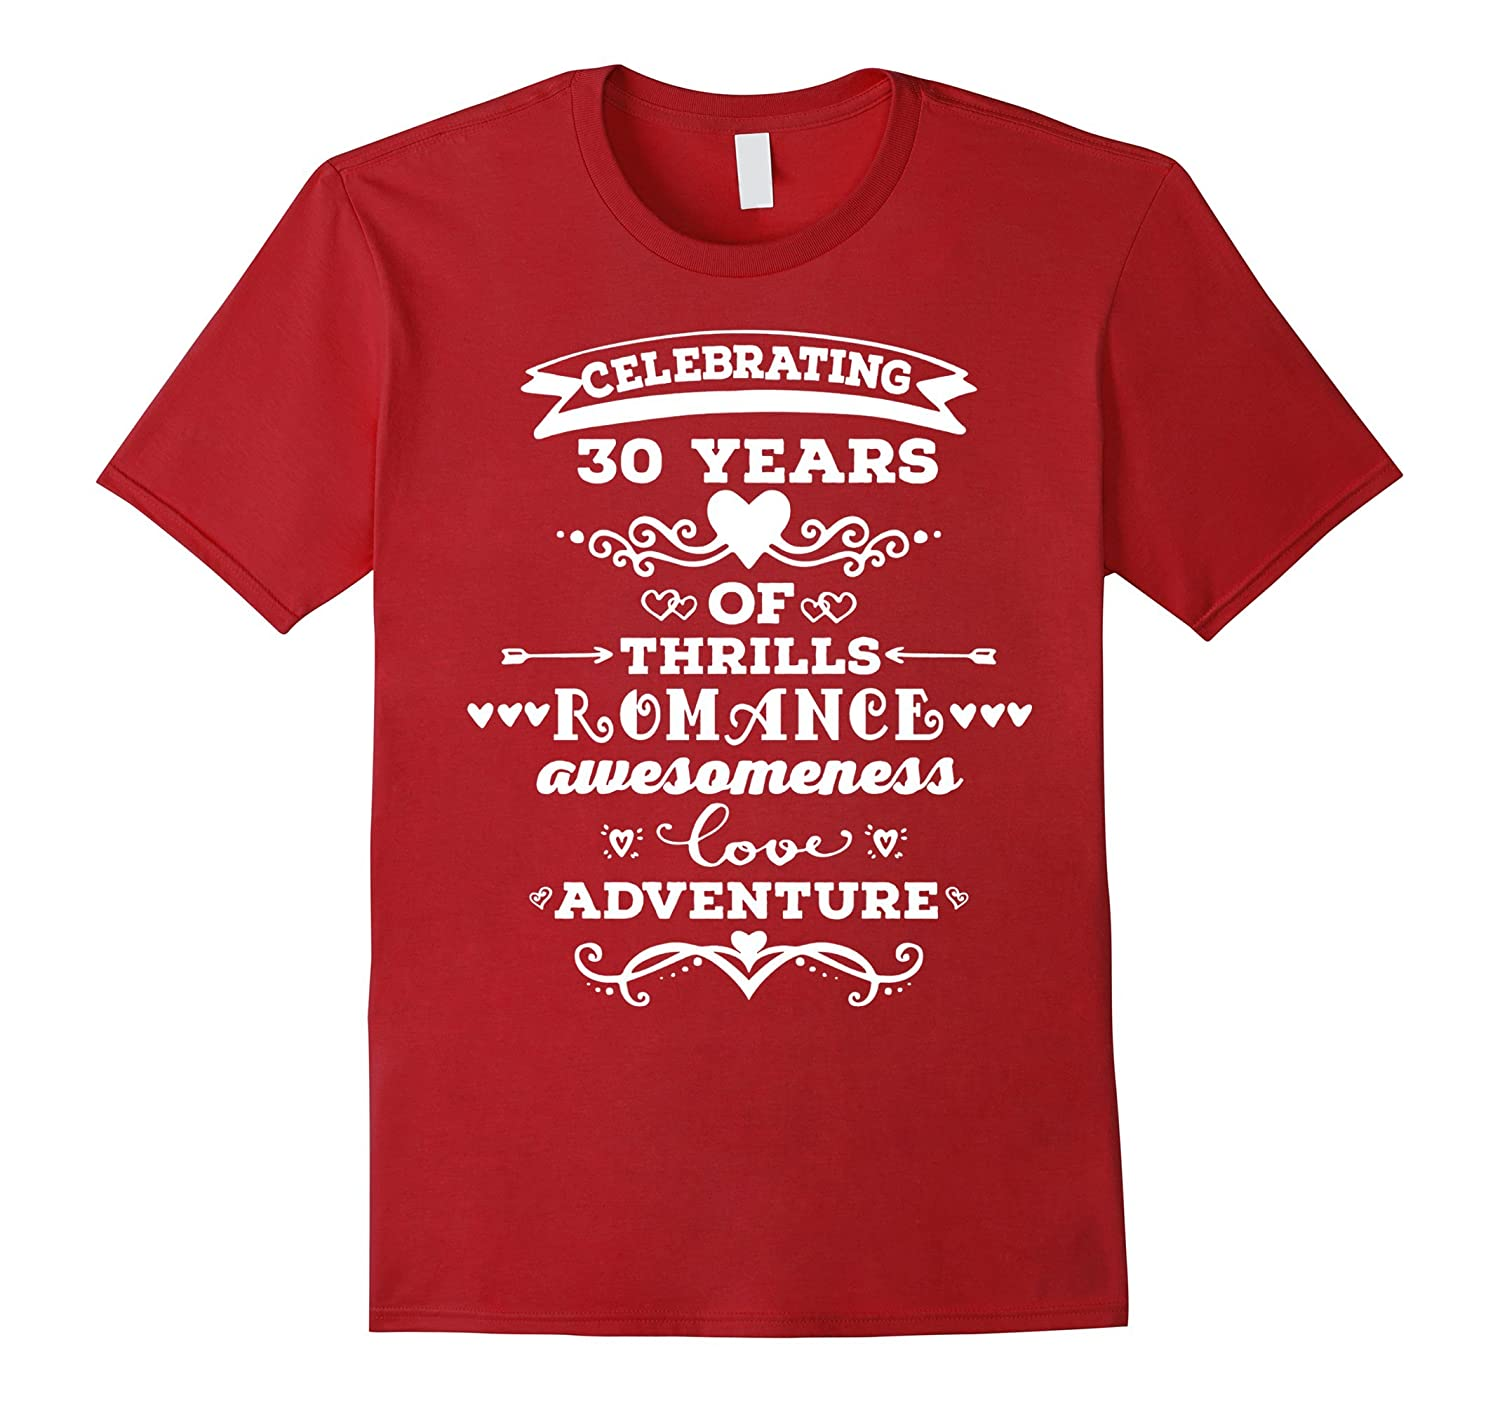 30th Wedding Anniversary T-shirt 30 Years Together Gift-PL – Polozatee